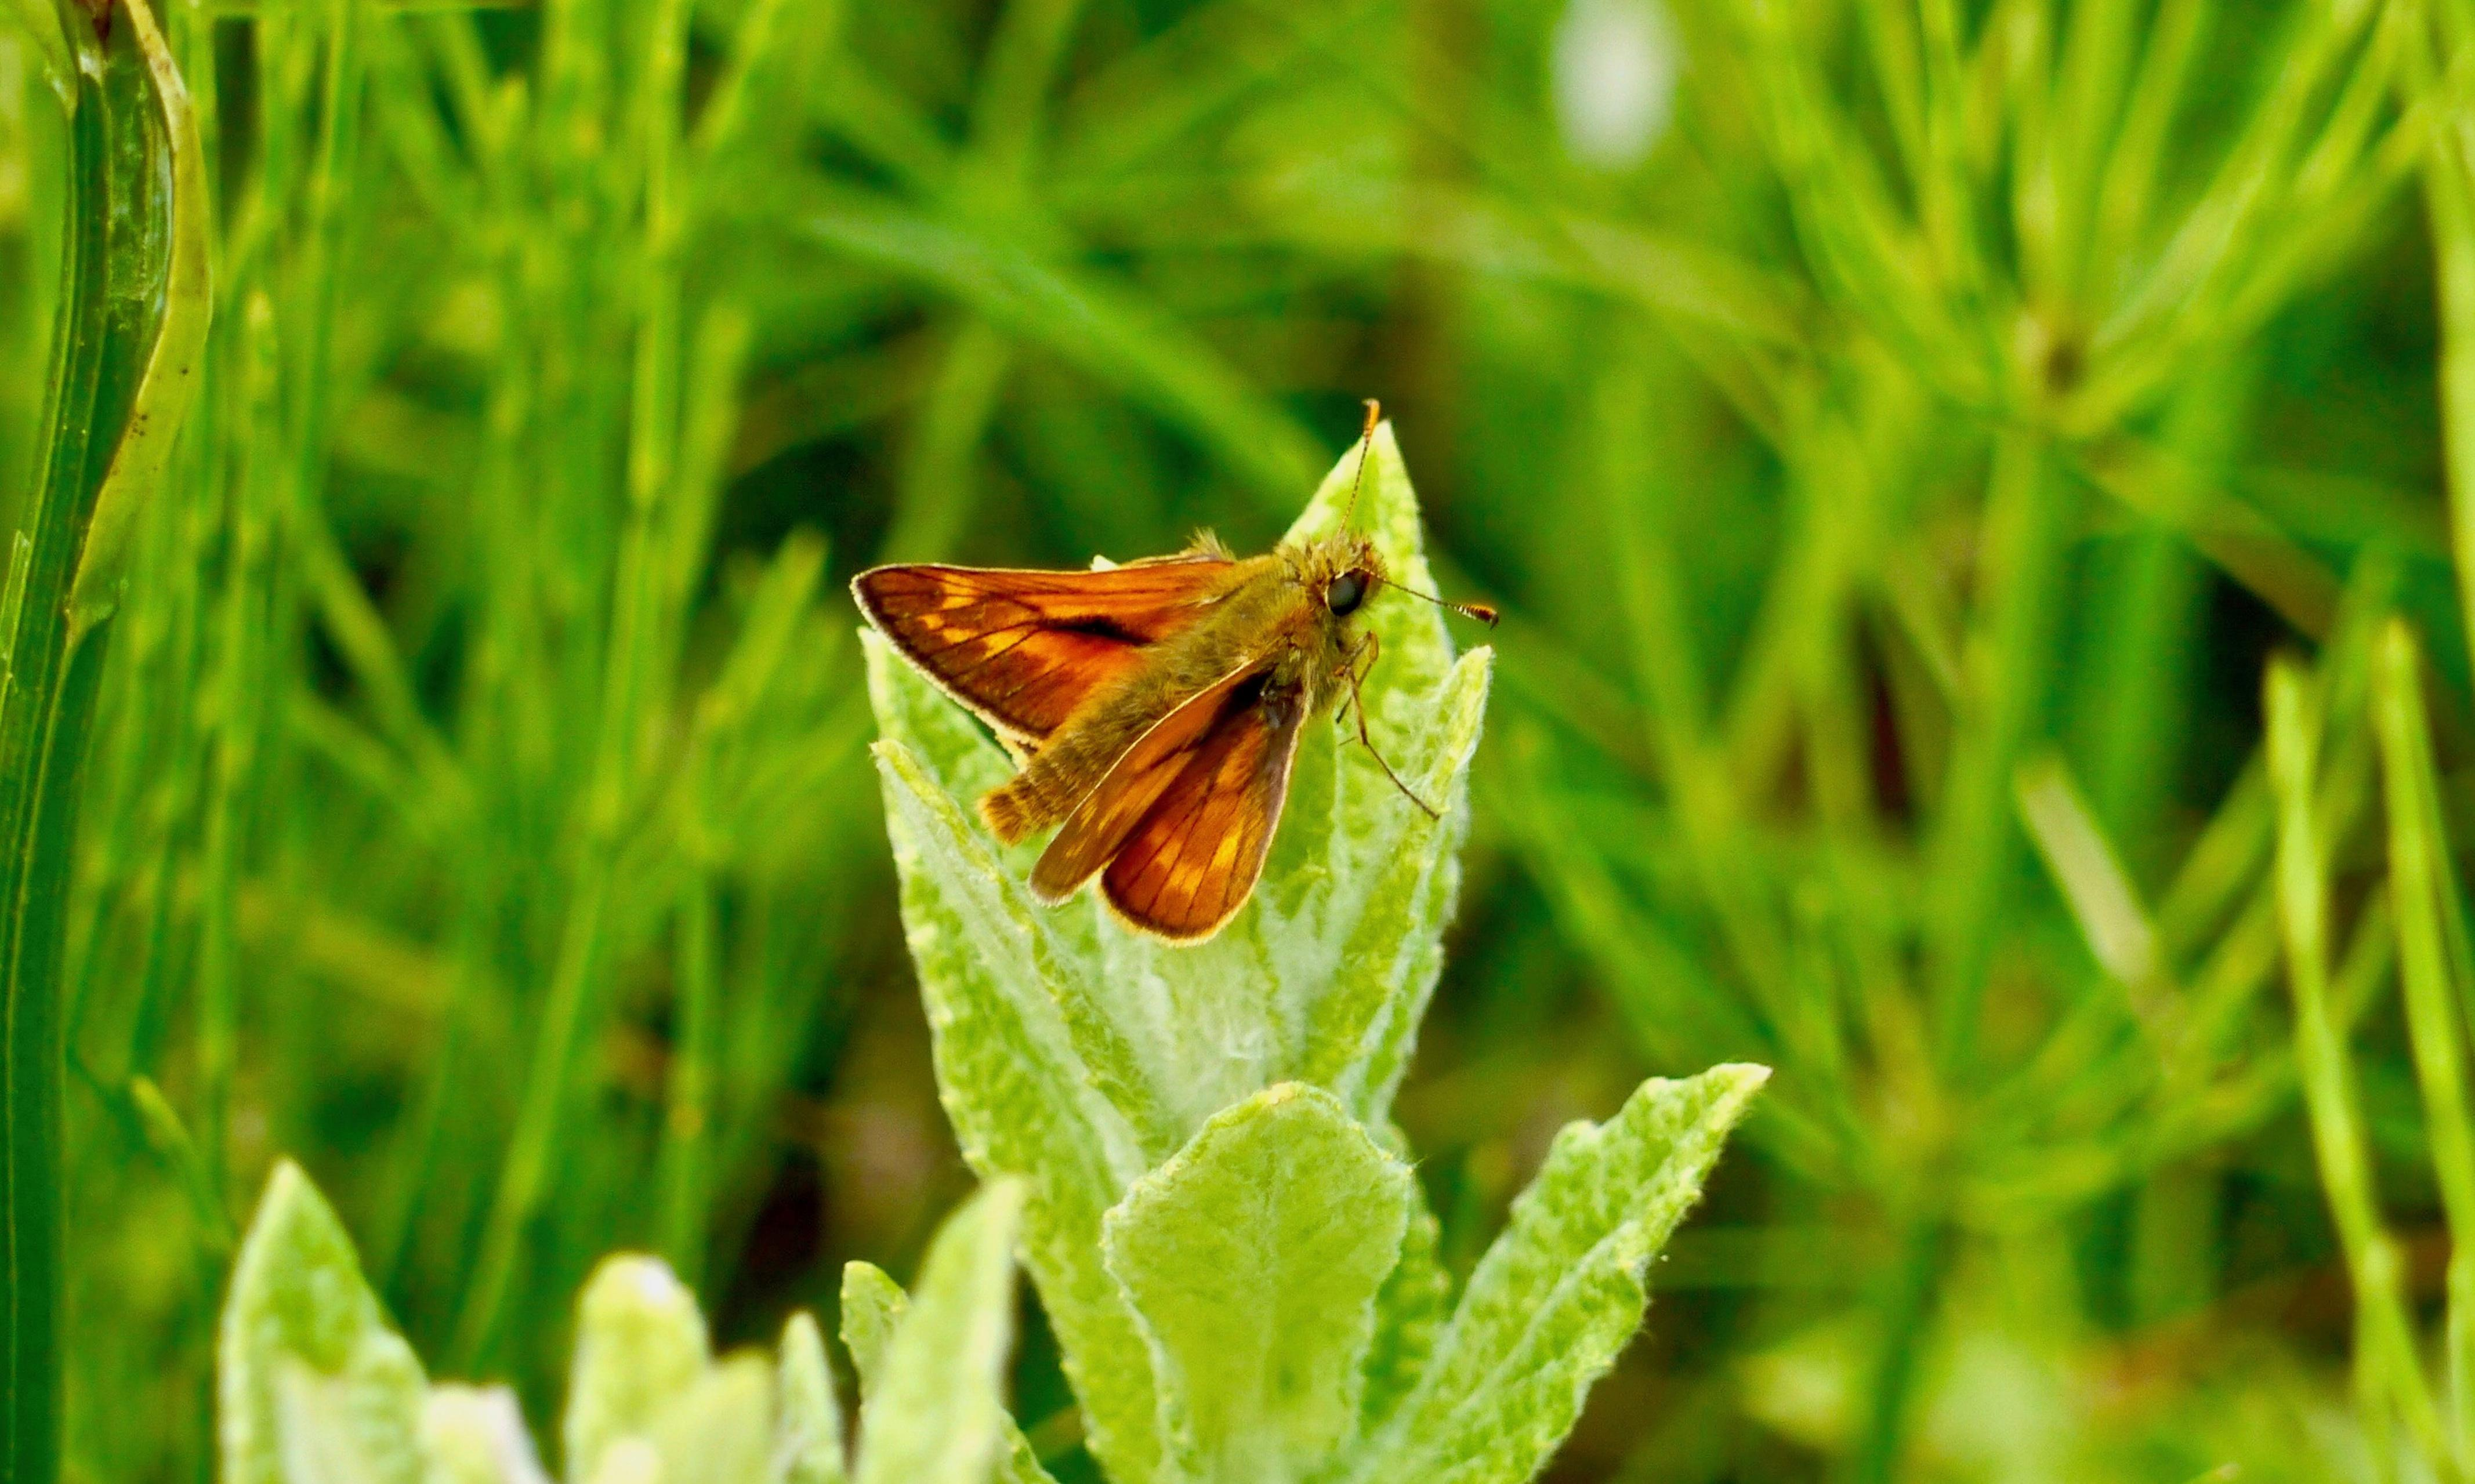 Country diary: July light turns the skipper's wings into flakes of gold